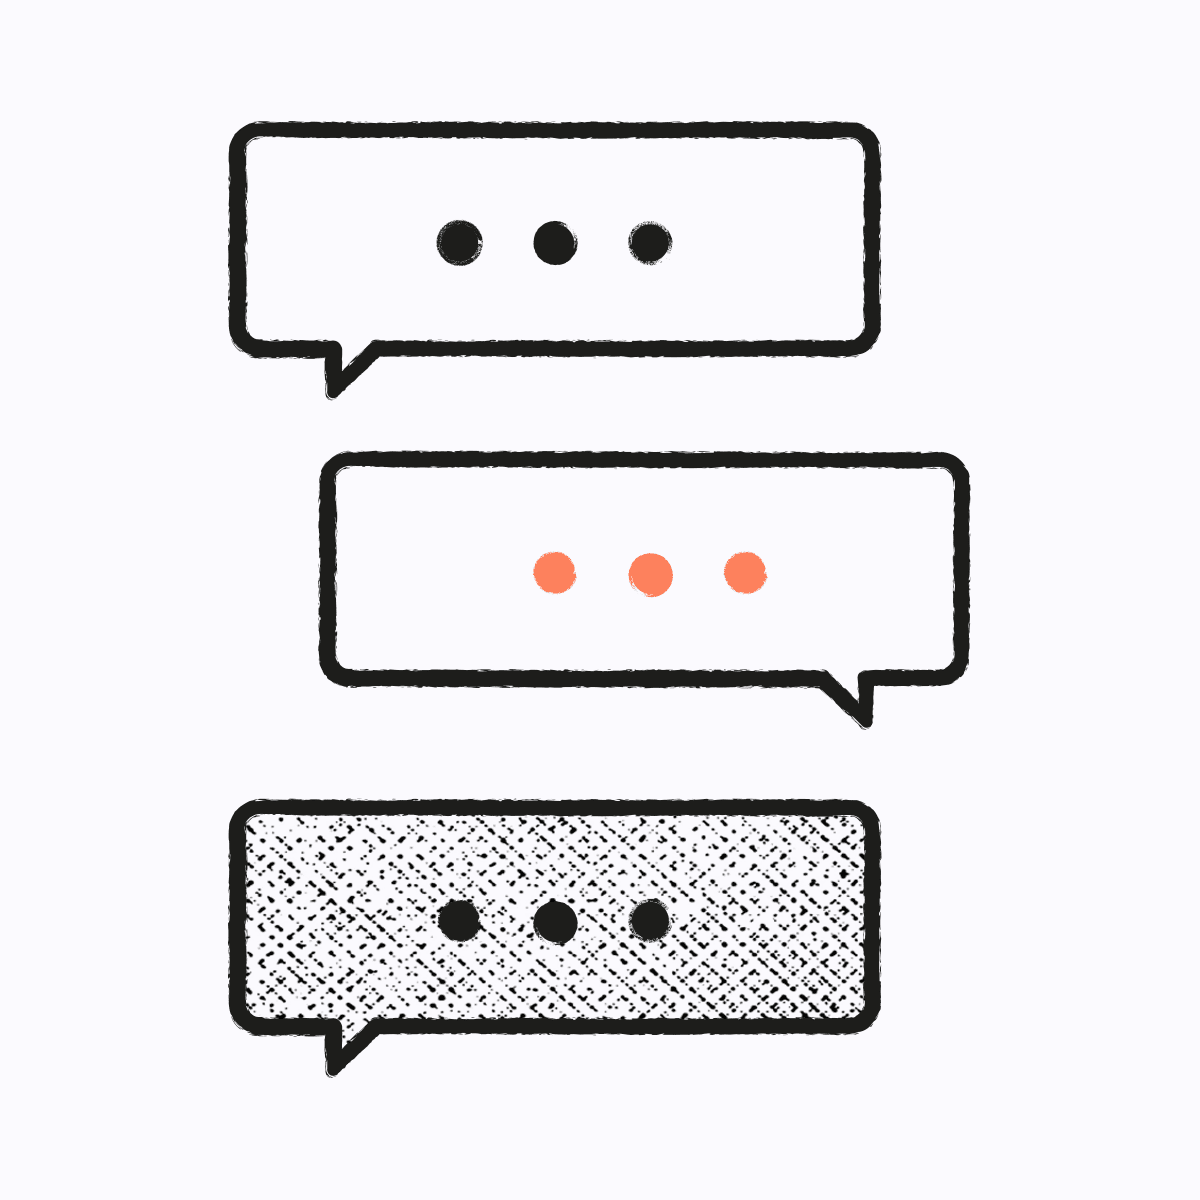 Illustration of text speech bubbles